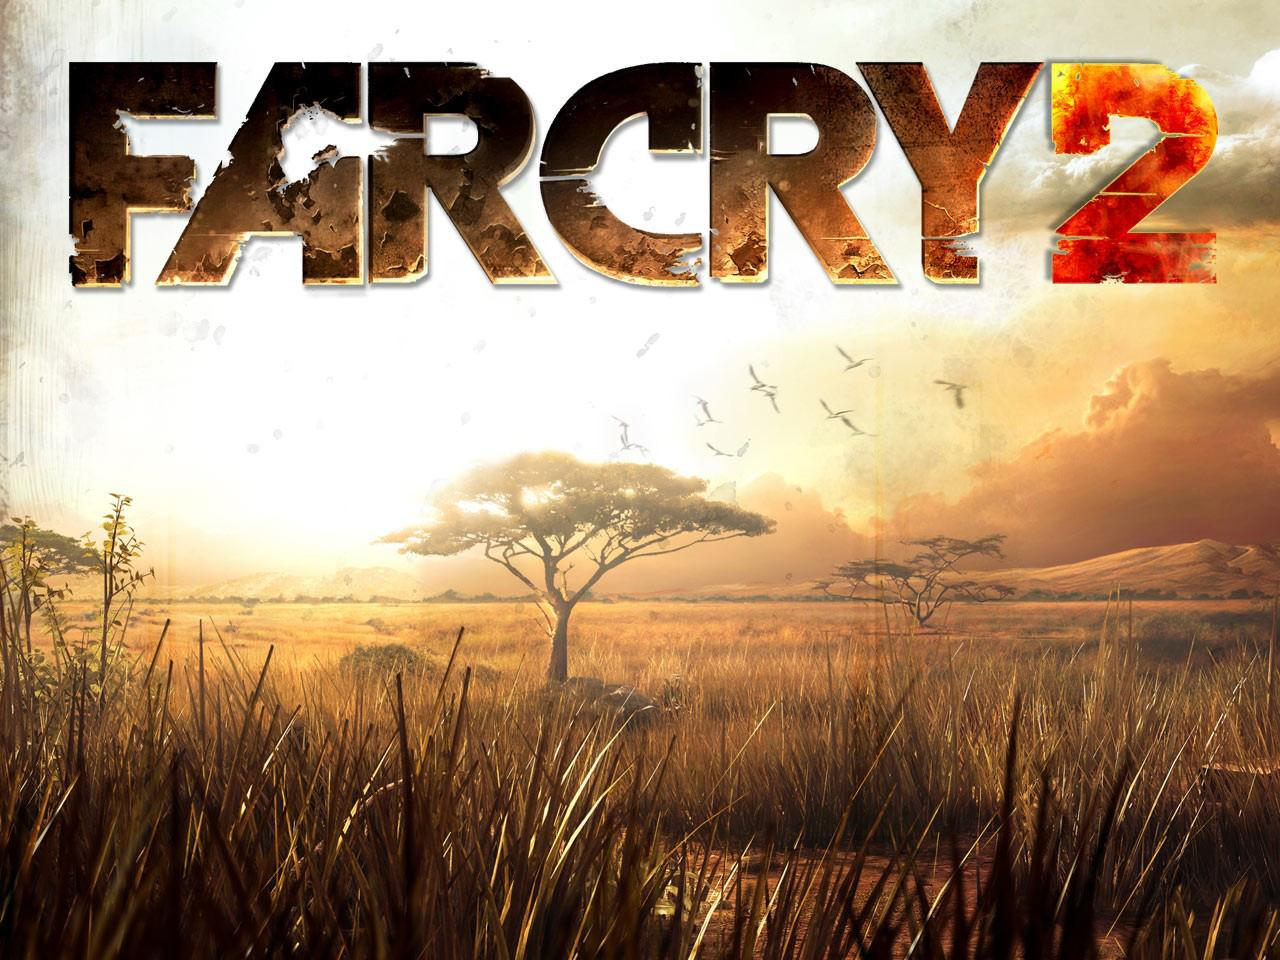 Free Download Far Cry 2 Wallpaper On The Game Wallpapers 1280x960